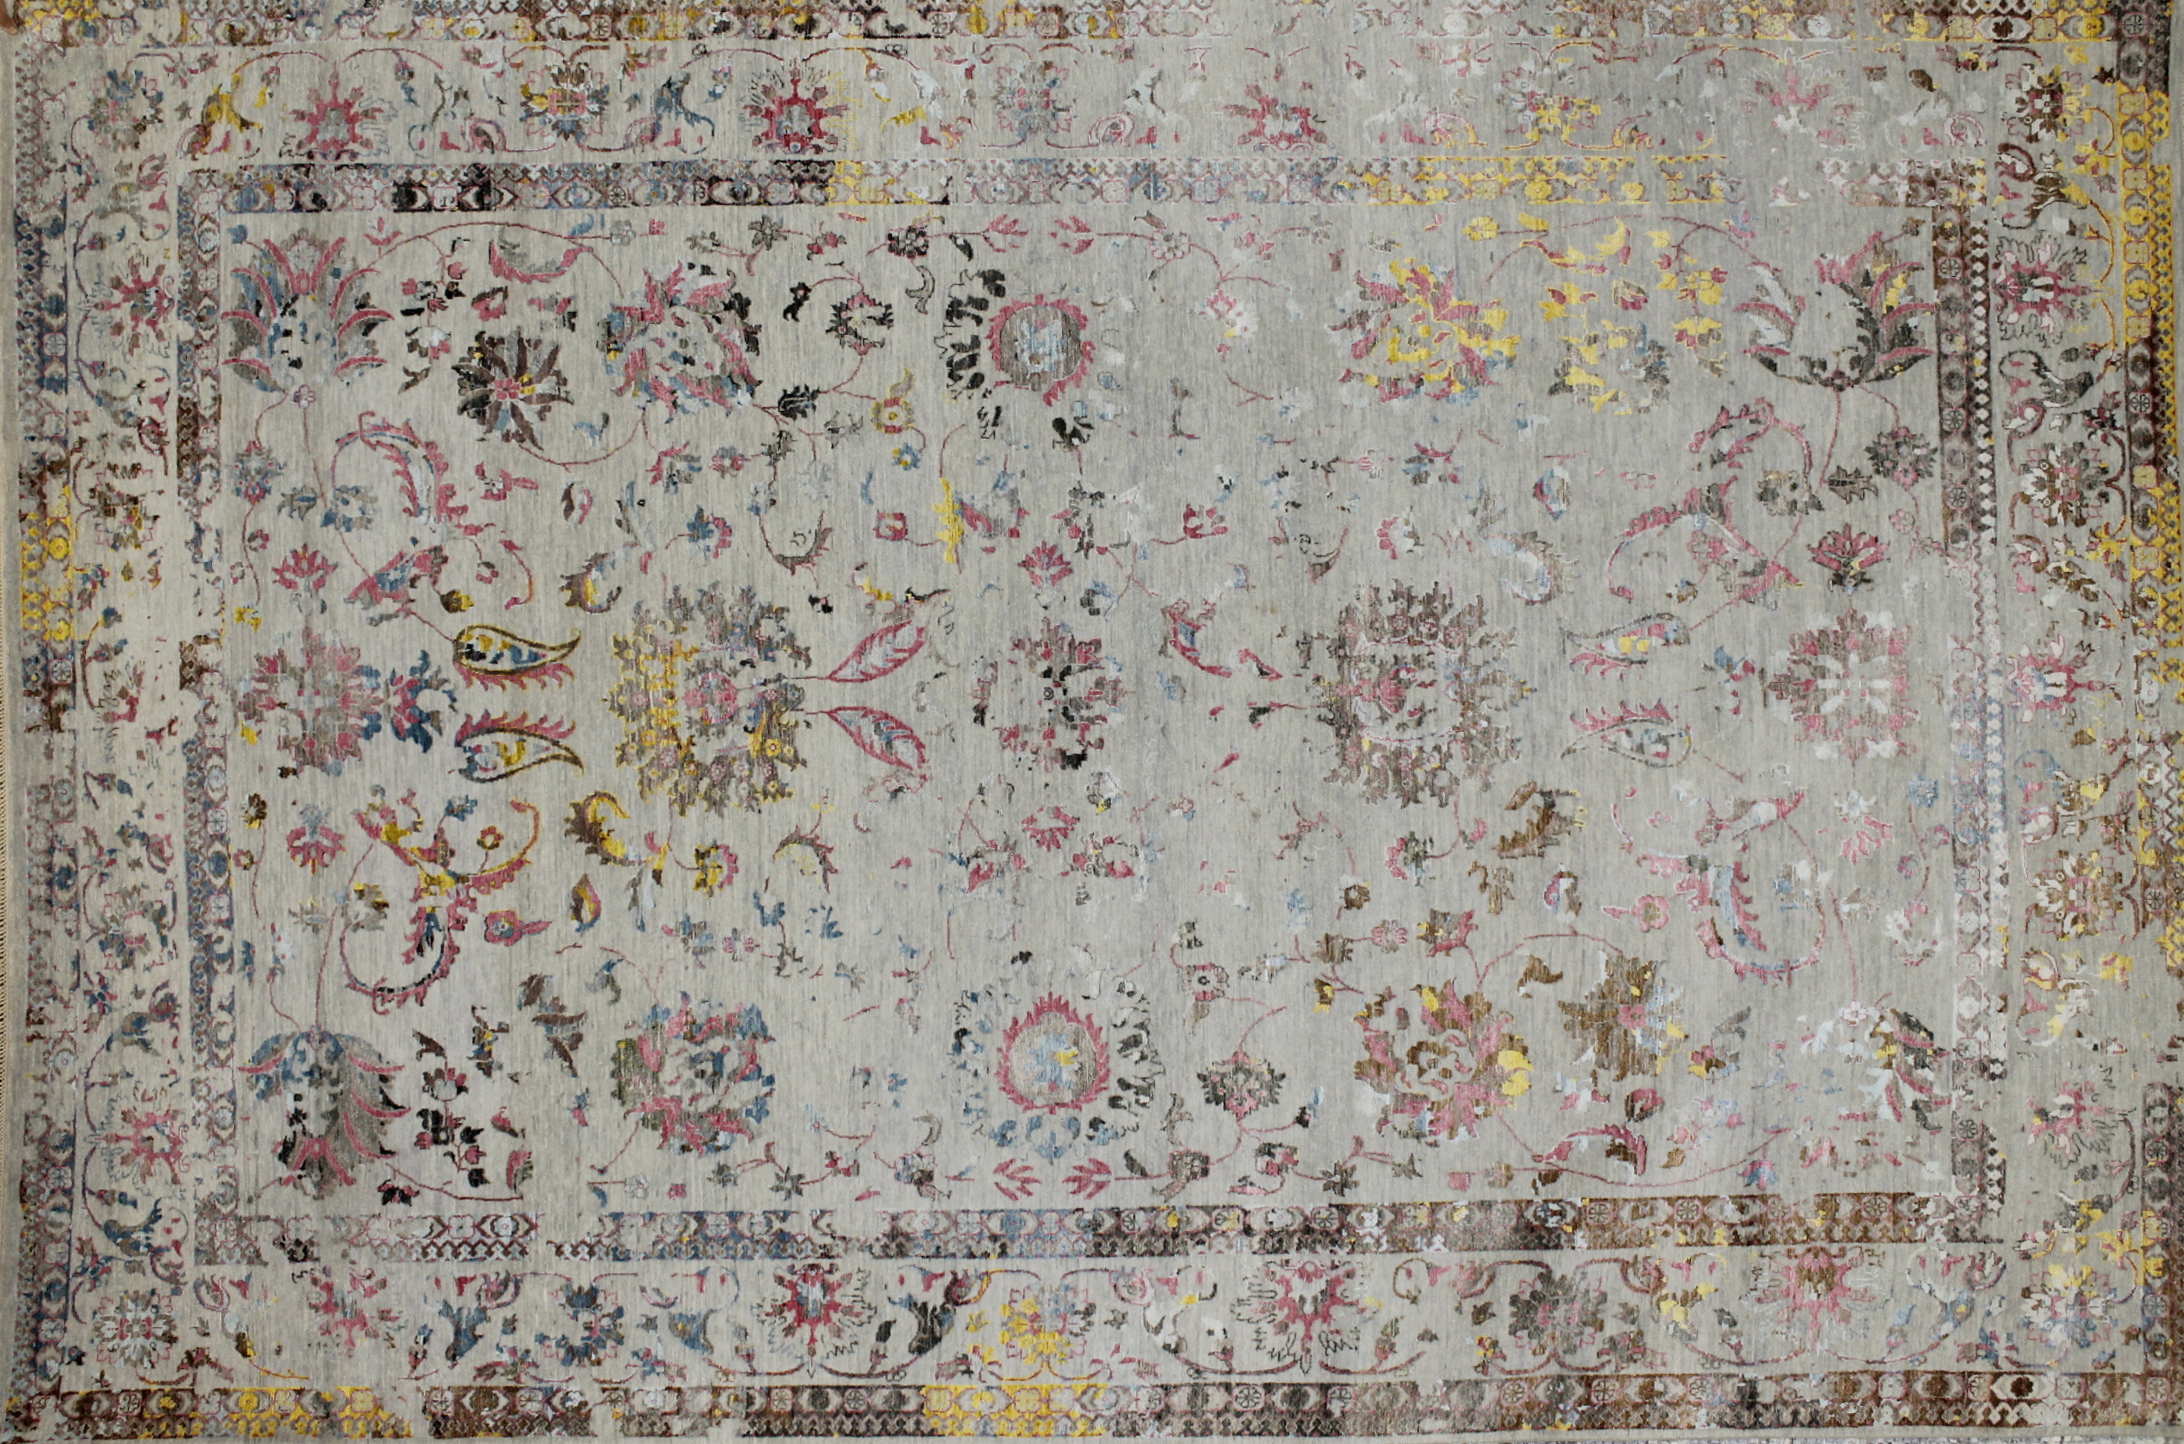 10x14 Transitional Hand Knotted Wool & Viscose Area Rug - MR022731